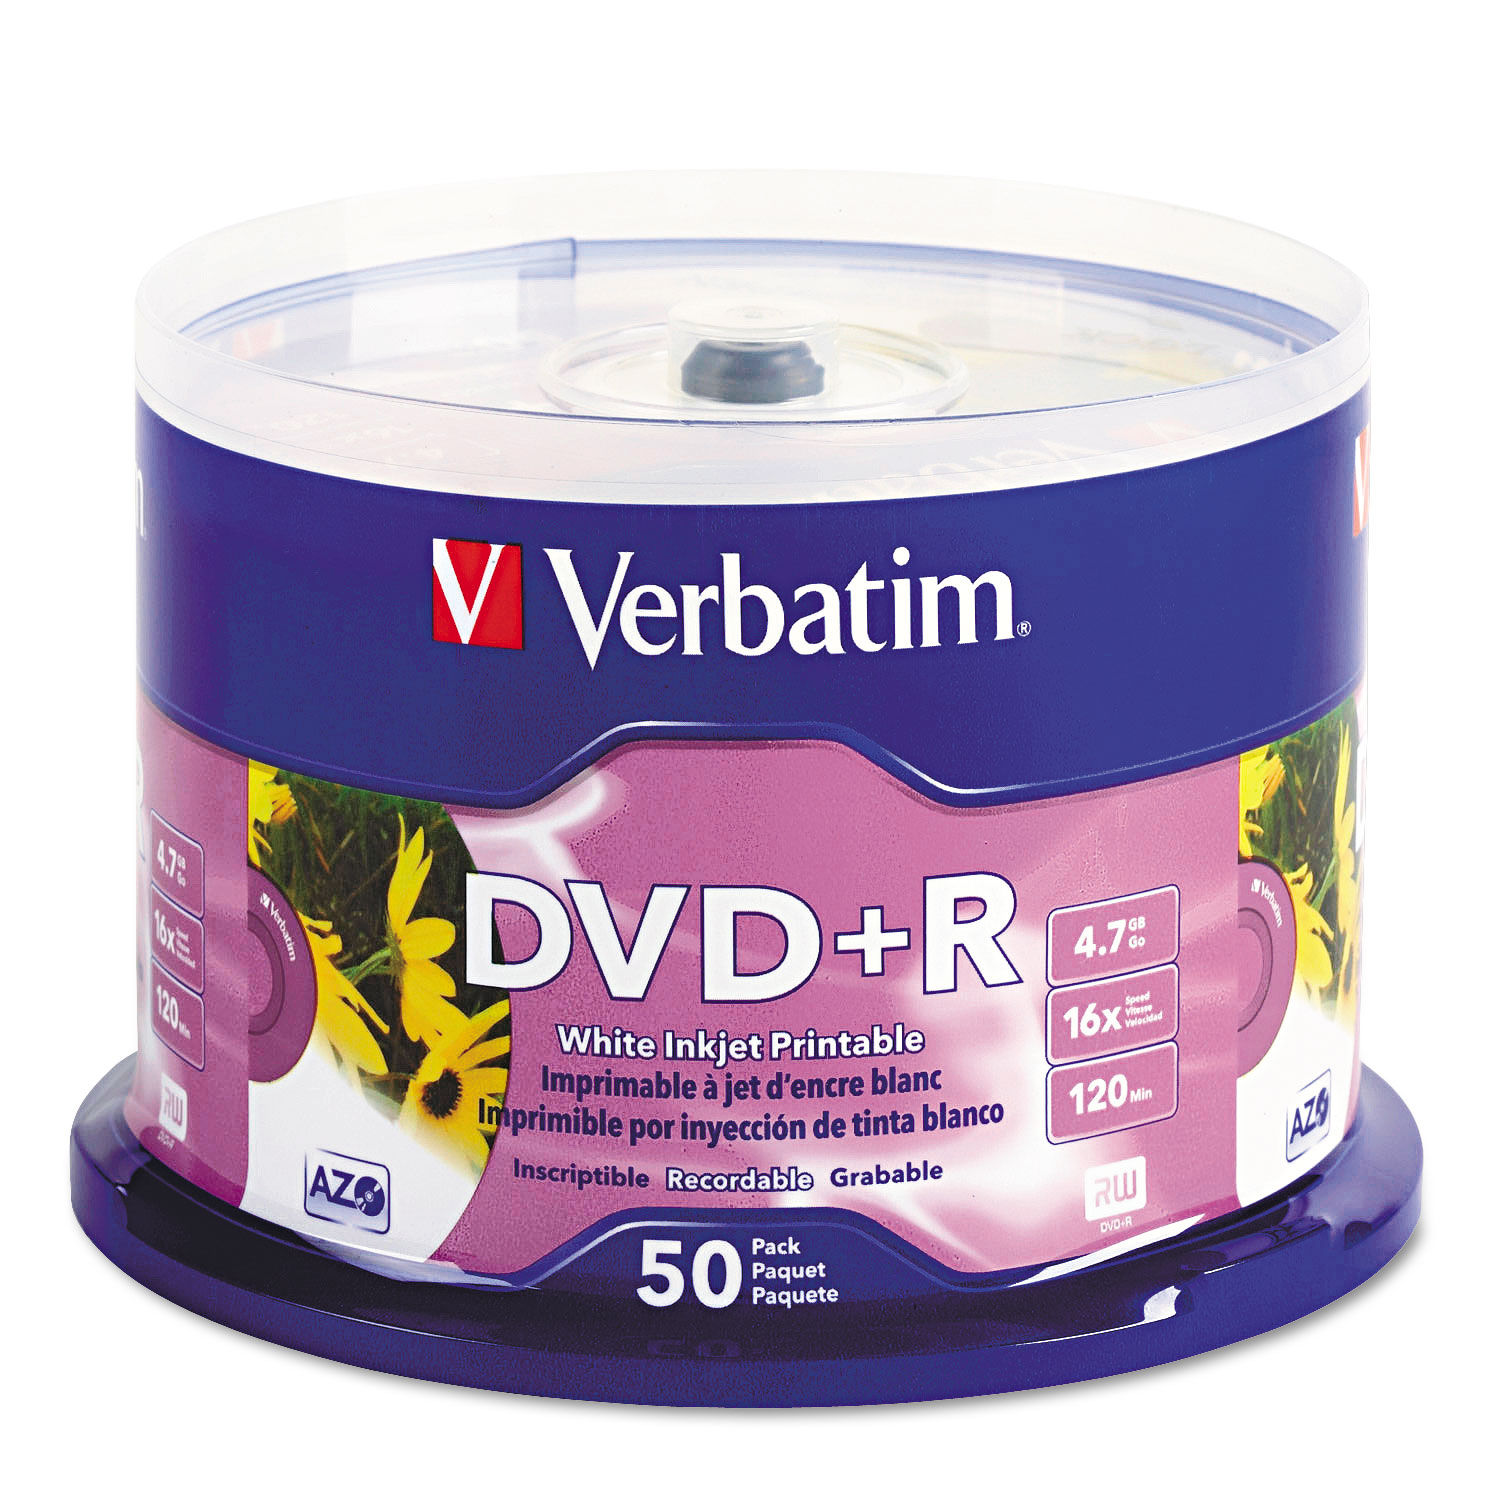 graphic about Printable Dvd Discs titled Inkjet Printable DVD+R Discs, White, 50/Pack